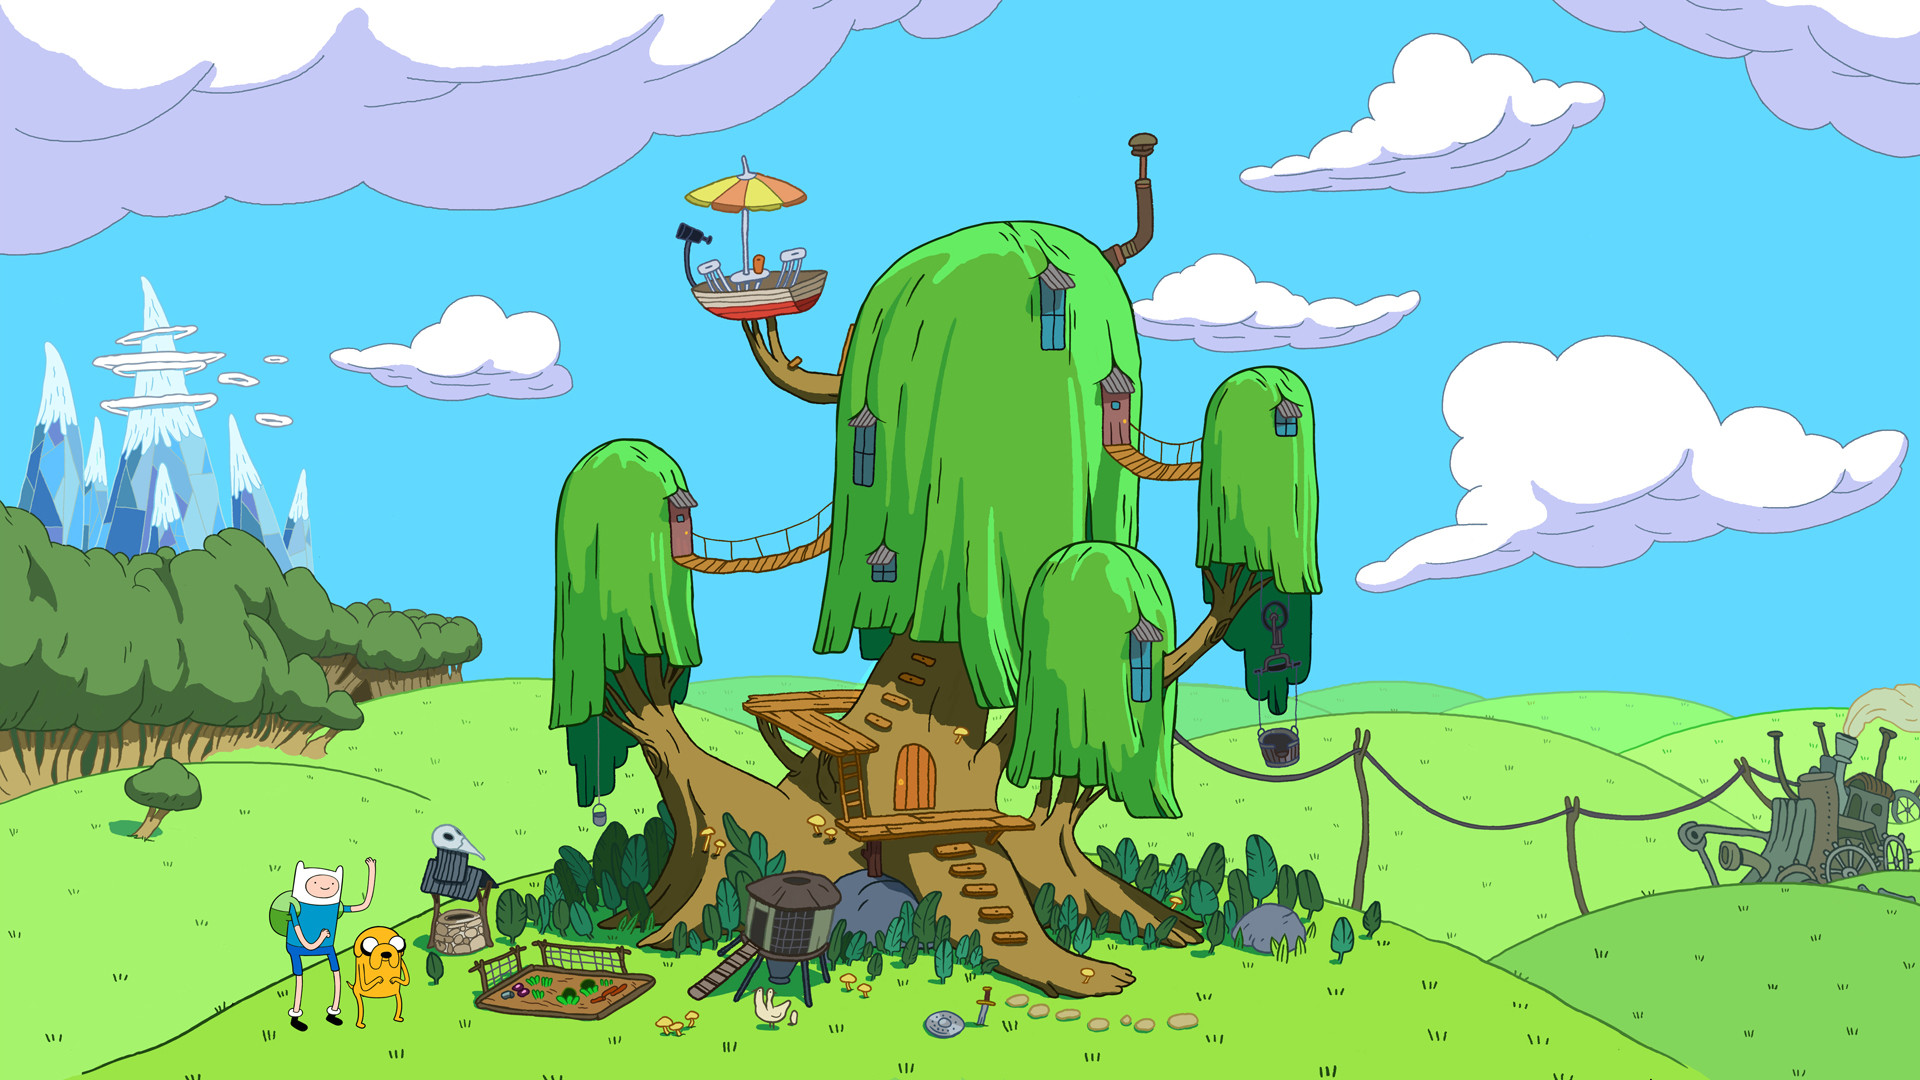 1920x1080 Adventure Time HD Wallpaper | Background Image |  | ID:219150 -  Wallpaper Abyss